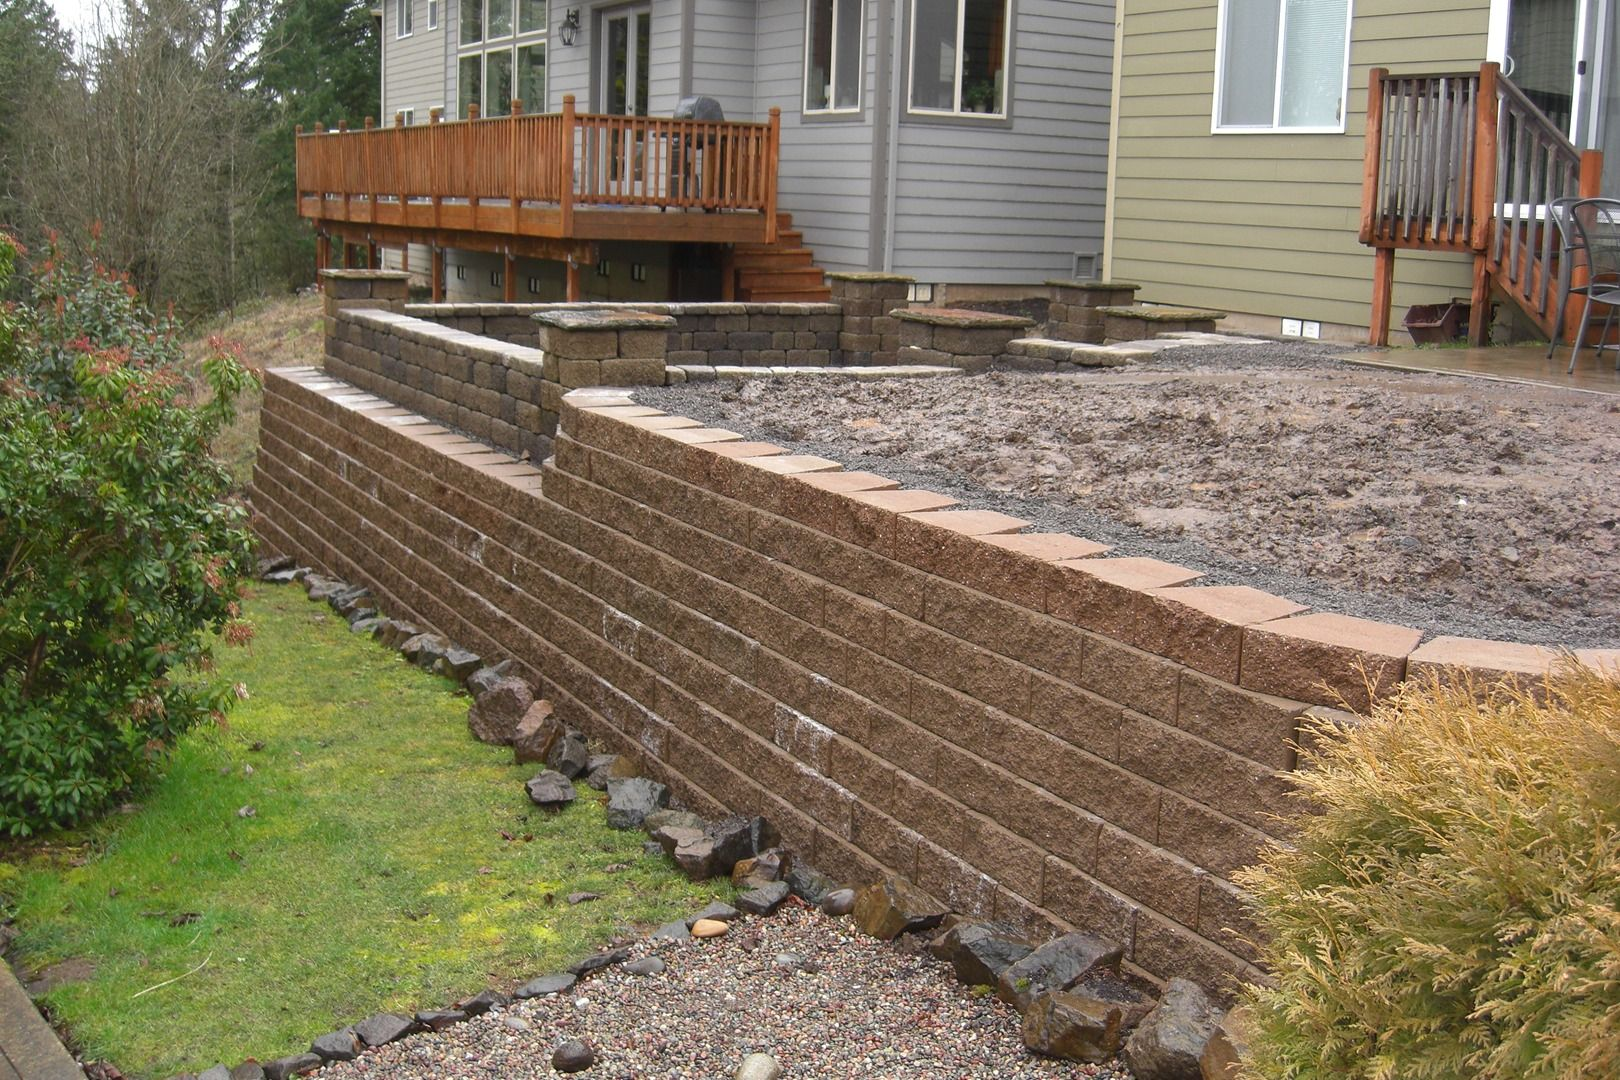 Specialists Landscaping Services Retaining Walls Sprinkler Systems Paver Patios Yard Retaining Wall Design Brick House Designs Landscaping Retaining Walls